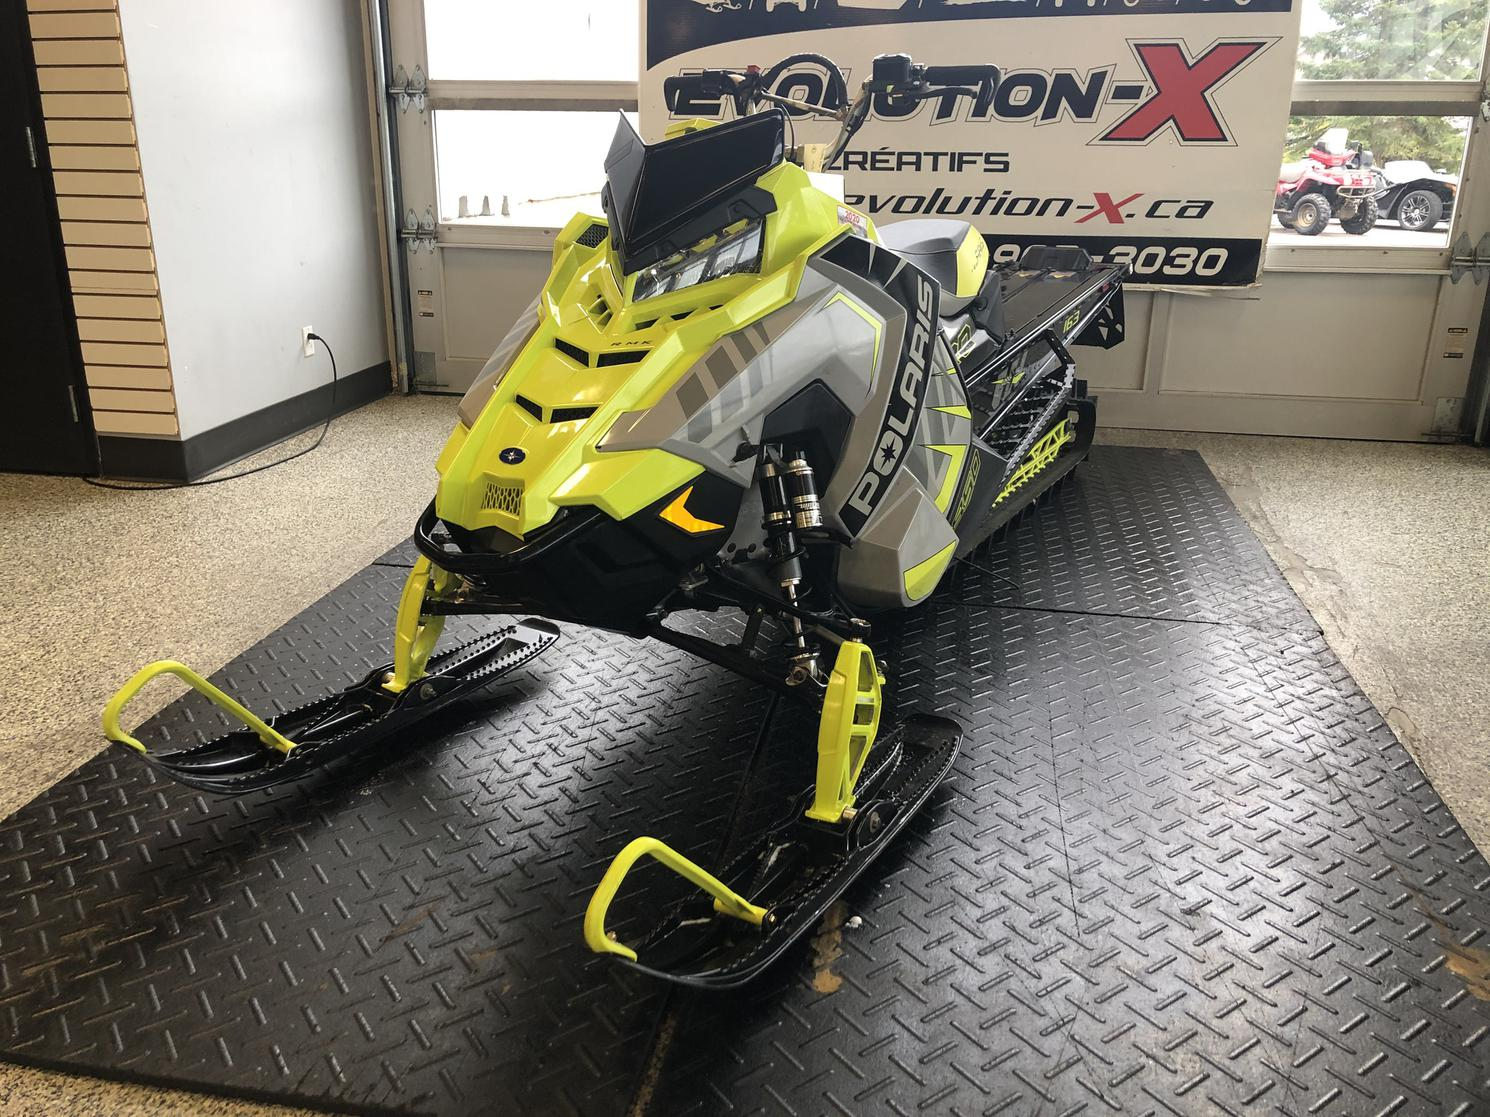 Polaris PRO RMK 850 PATRIOT 163 2.6  SC SELECT 2020 - GARANTIE PREMIUM 5 ANS DISPONIBLE !!!  - CONTACTEZ-NOUS 418-902-3030 !!!